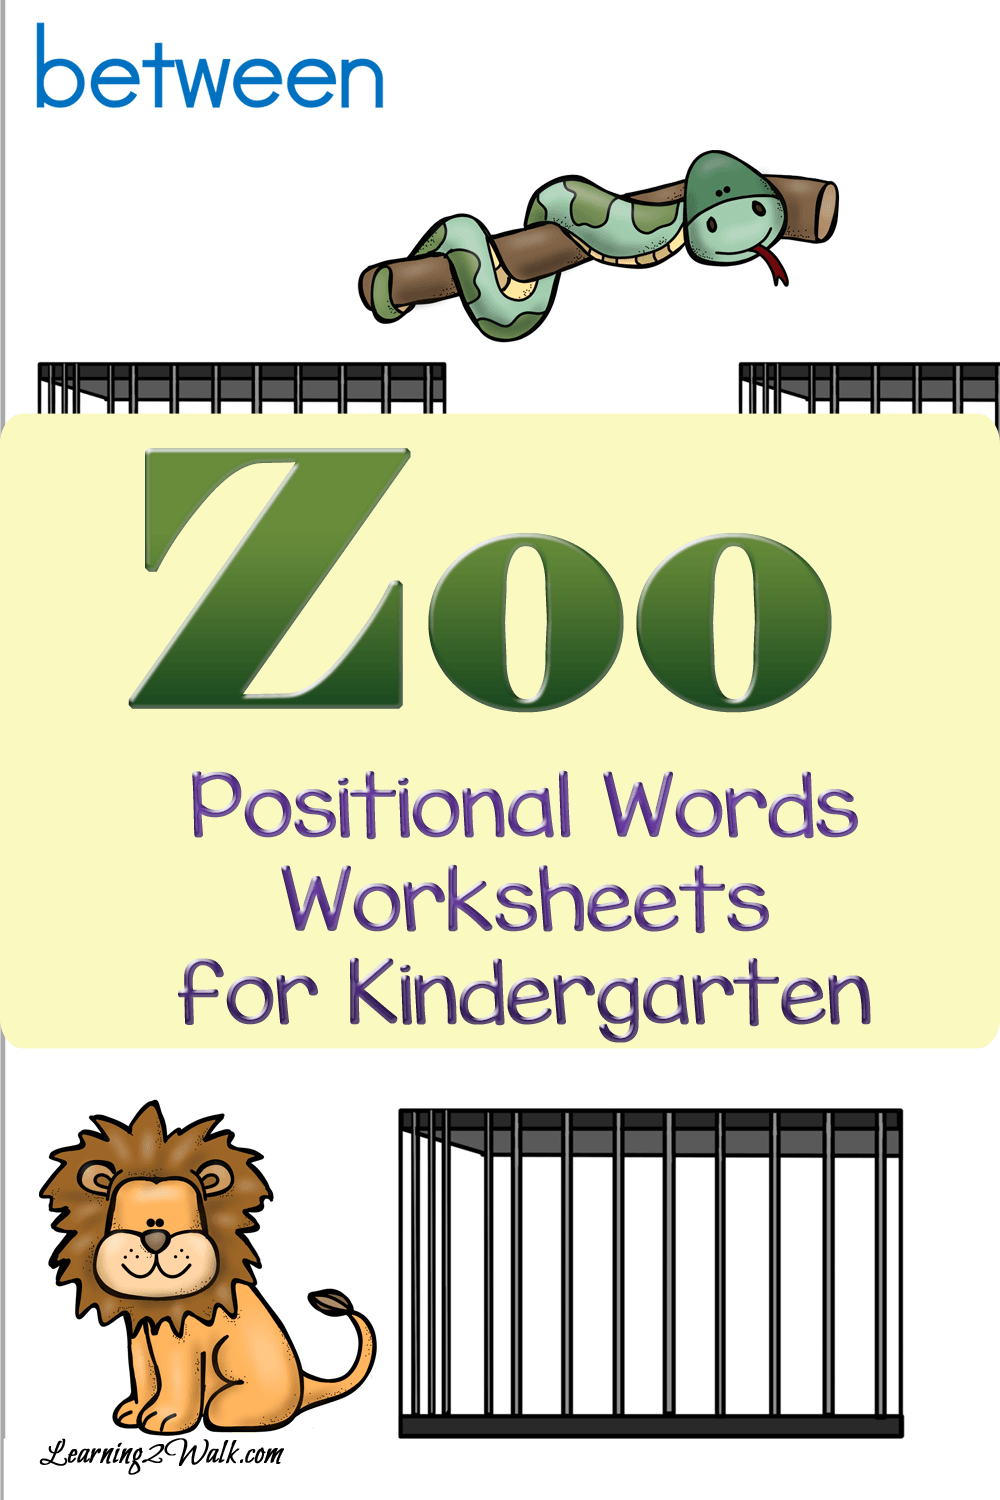 Worksheets Positional Words Worksheets For Kindergarten zoo positional words worksheets for kindergarten teaching young allow your kids to explore these kindergarten